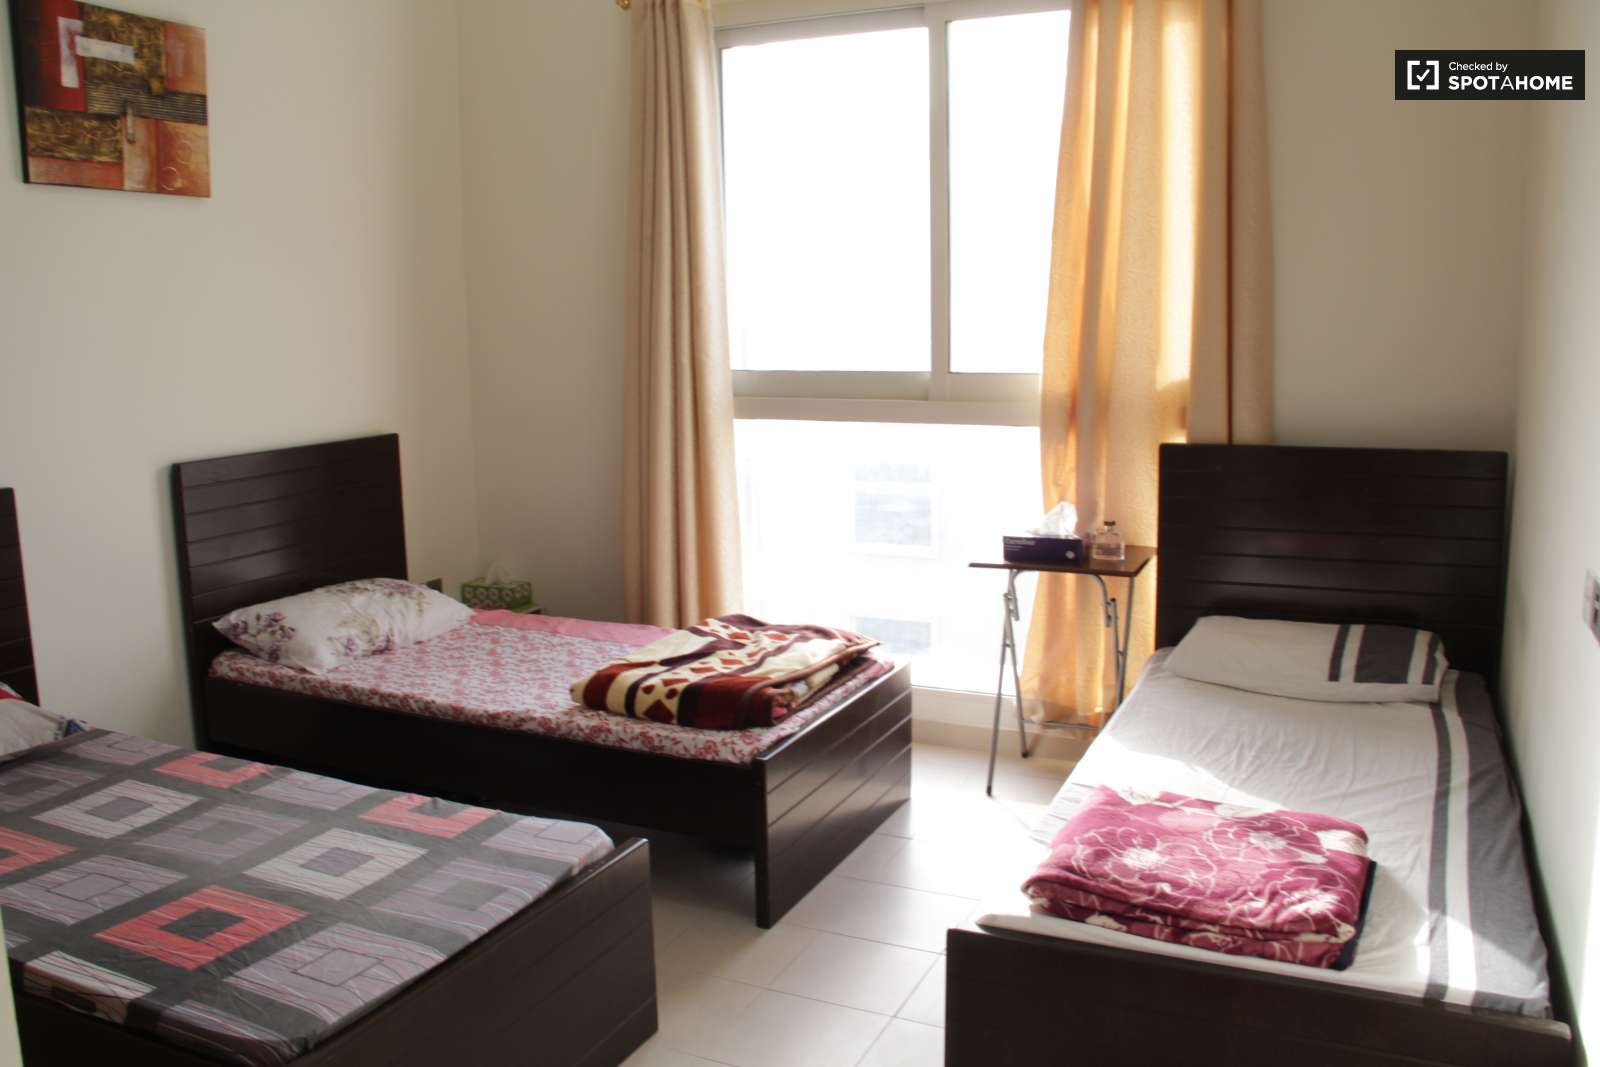 Single Bed Bedroom Rooms For Rent In Apartment With Pool In Al Barsha Dubai Spotahome